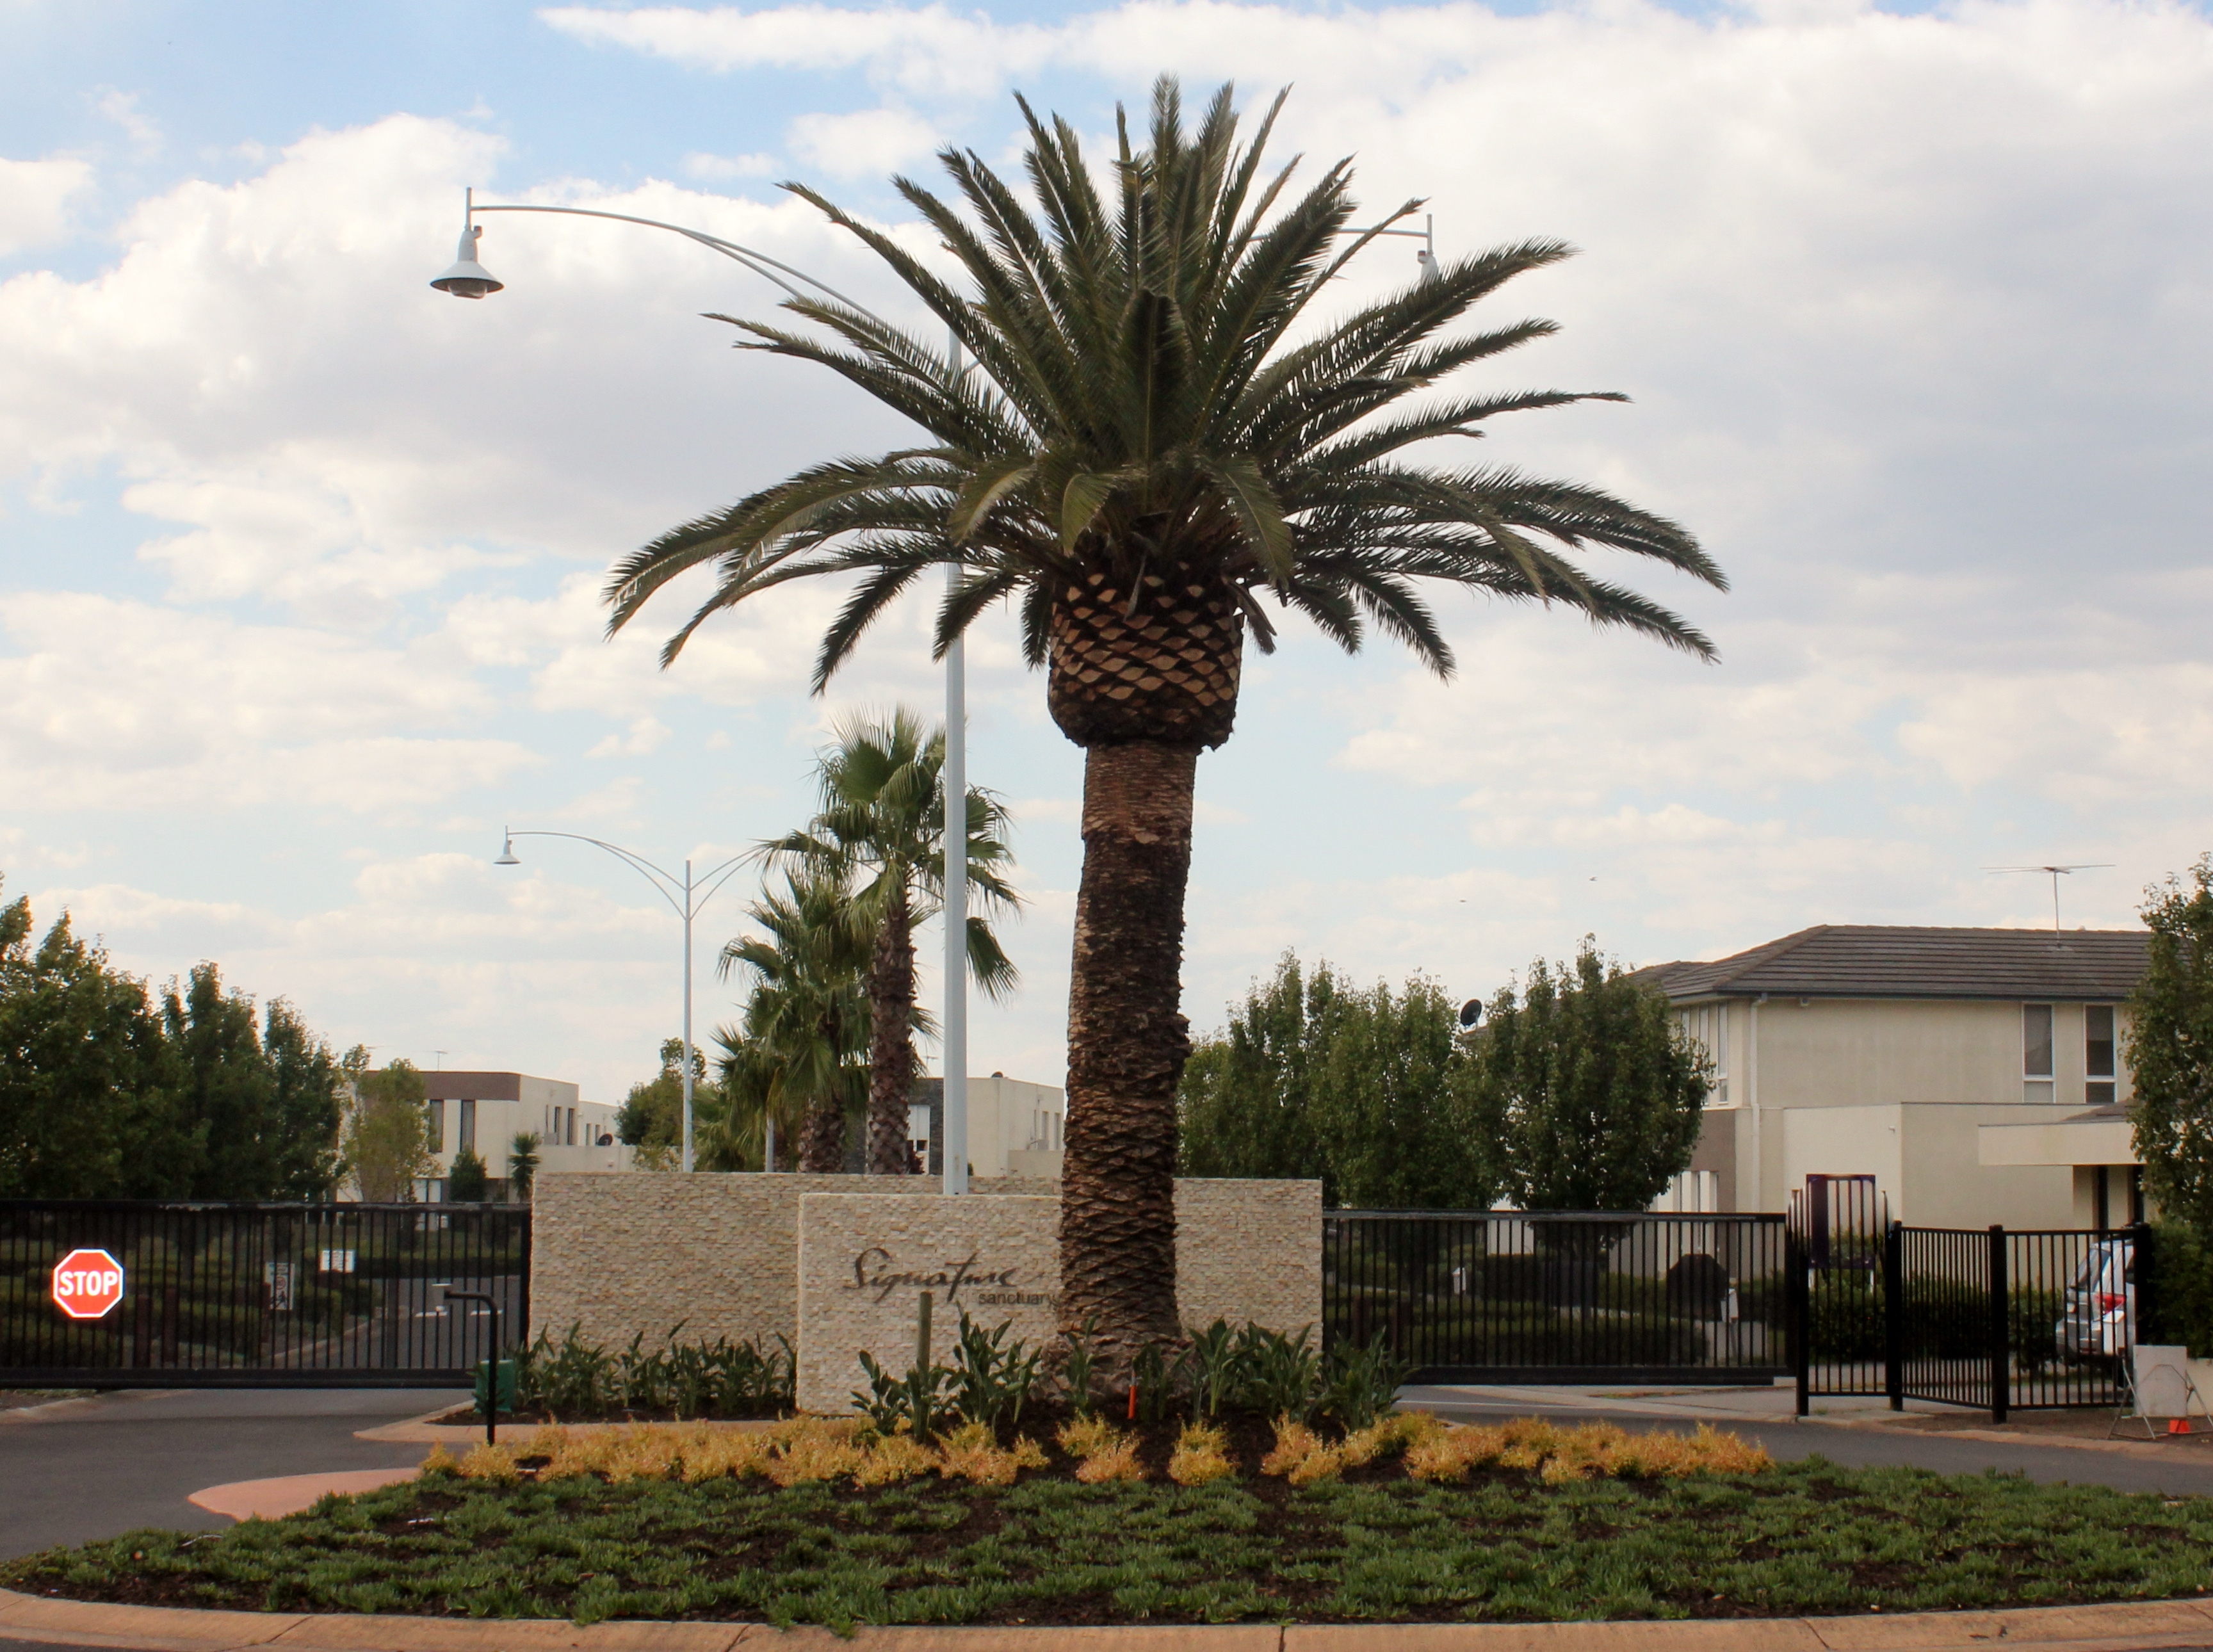 Signature Estate / Commercial Gardening & Landscaping / Enhance Services